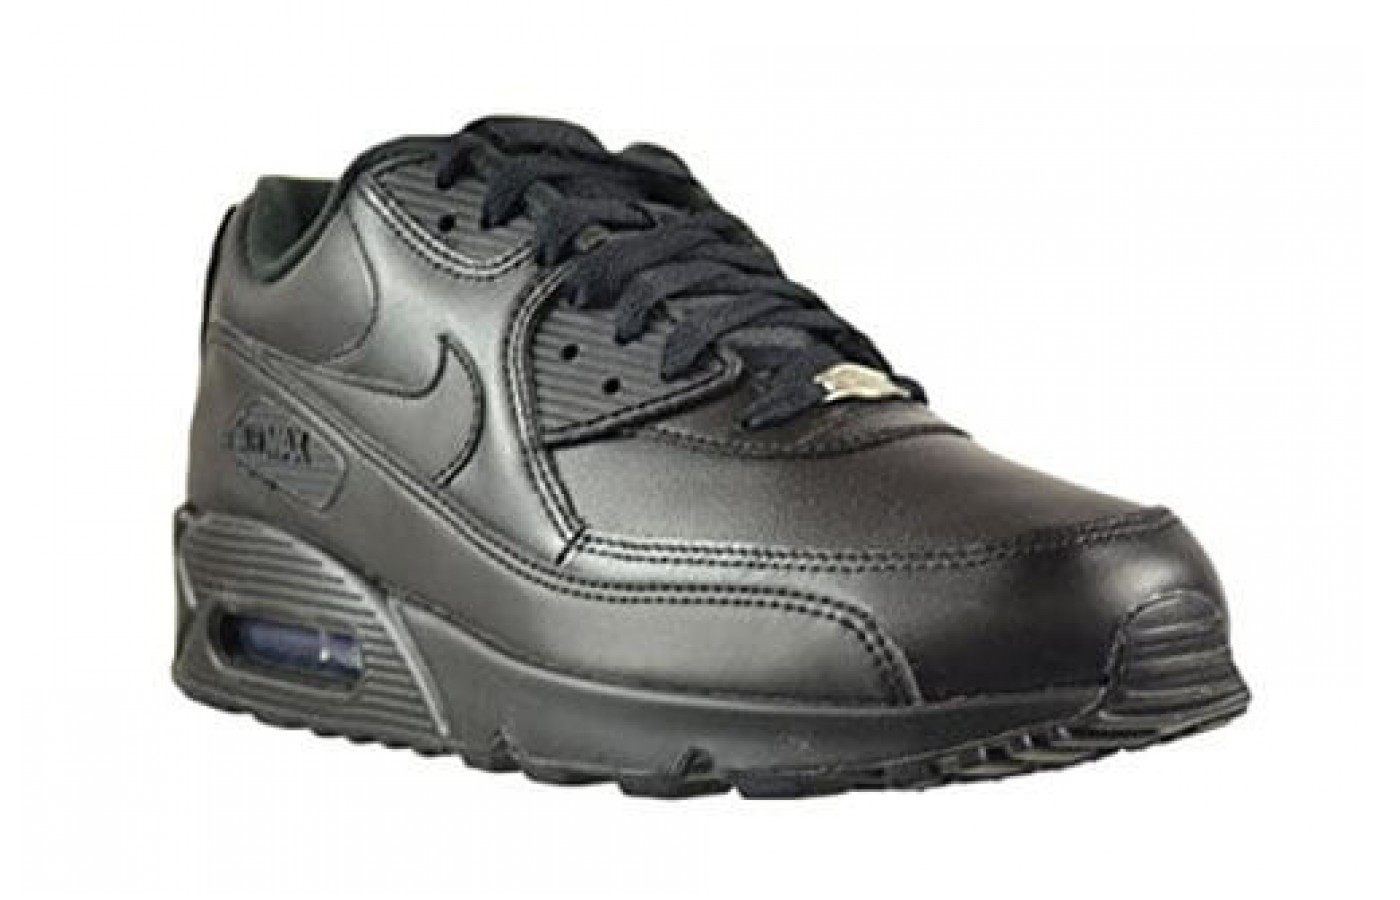 7ef730ba86 Nike Air Max 90 Leather. This shoe is great for logging miles or as a  fashionable accessory for a night out ...